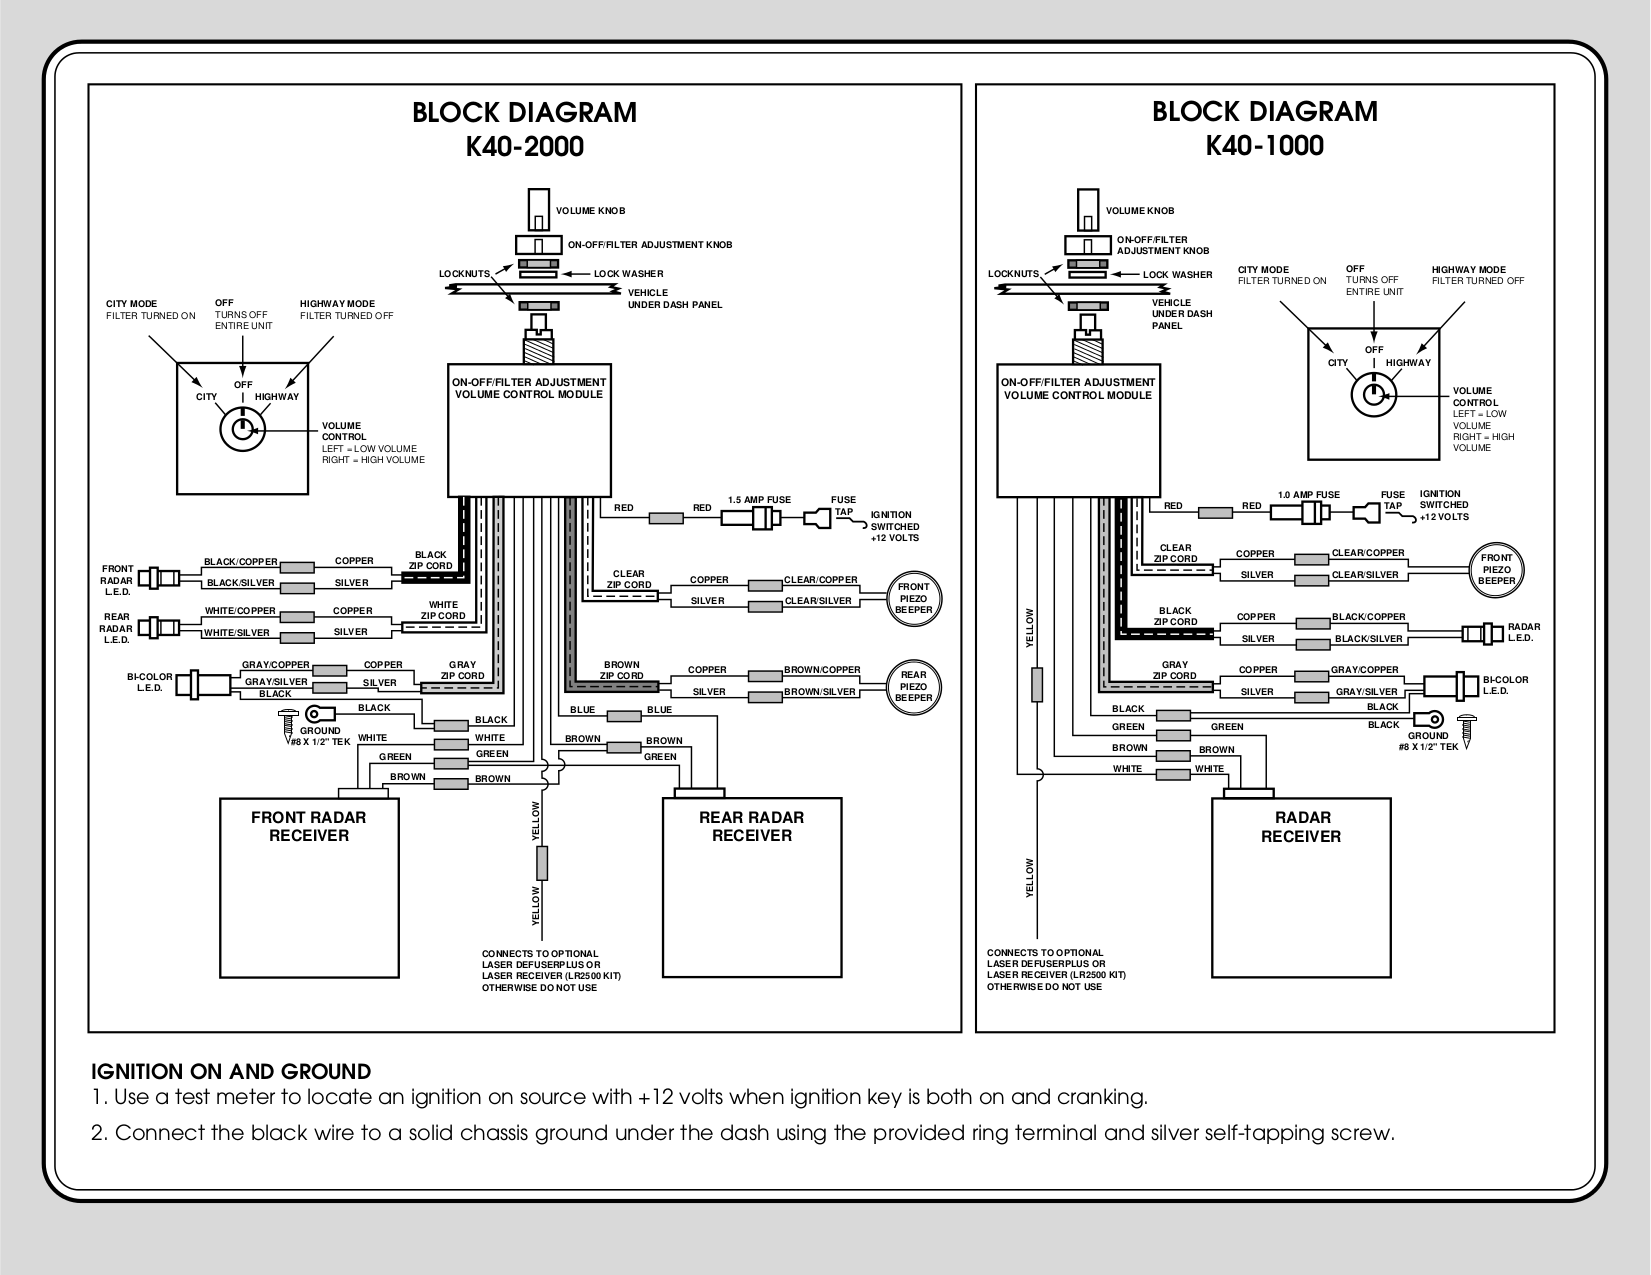 1C0E185 K40 Fuse Diagram | Wiring Resources on jvc wiring diagram, alpine wiring diagram, sony wiring diagram, n20 wiring diagram, kicker wiring diagram, x50 wiring diagram, k30 wiring diagram, k10 wiring diagram, viper wiring diagram, kenwood wiring diagram, m50 wiring diagram, pioneer wiring diagram, audiovox wiring diagram, t12 wiring diagram,